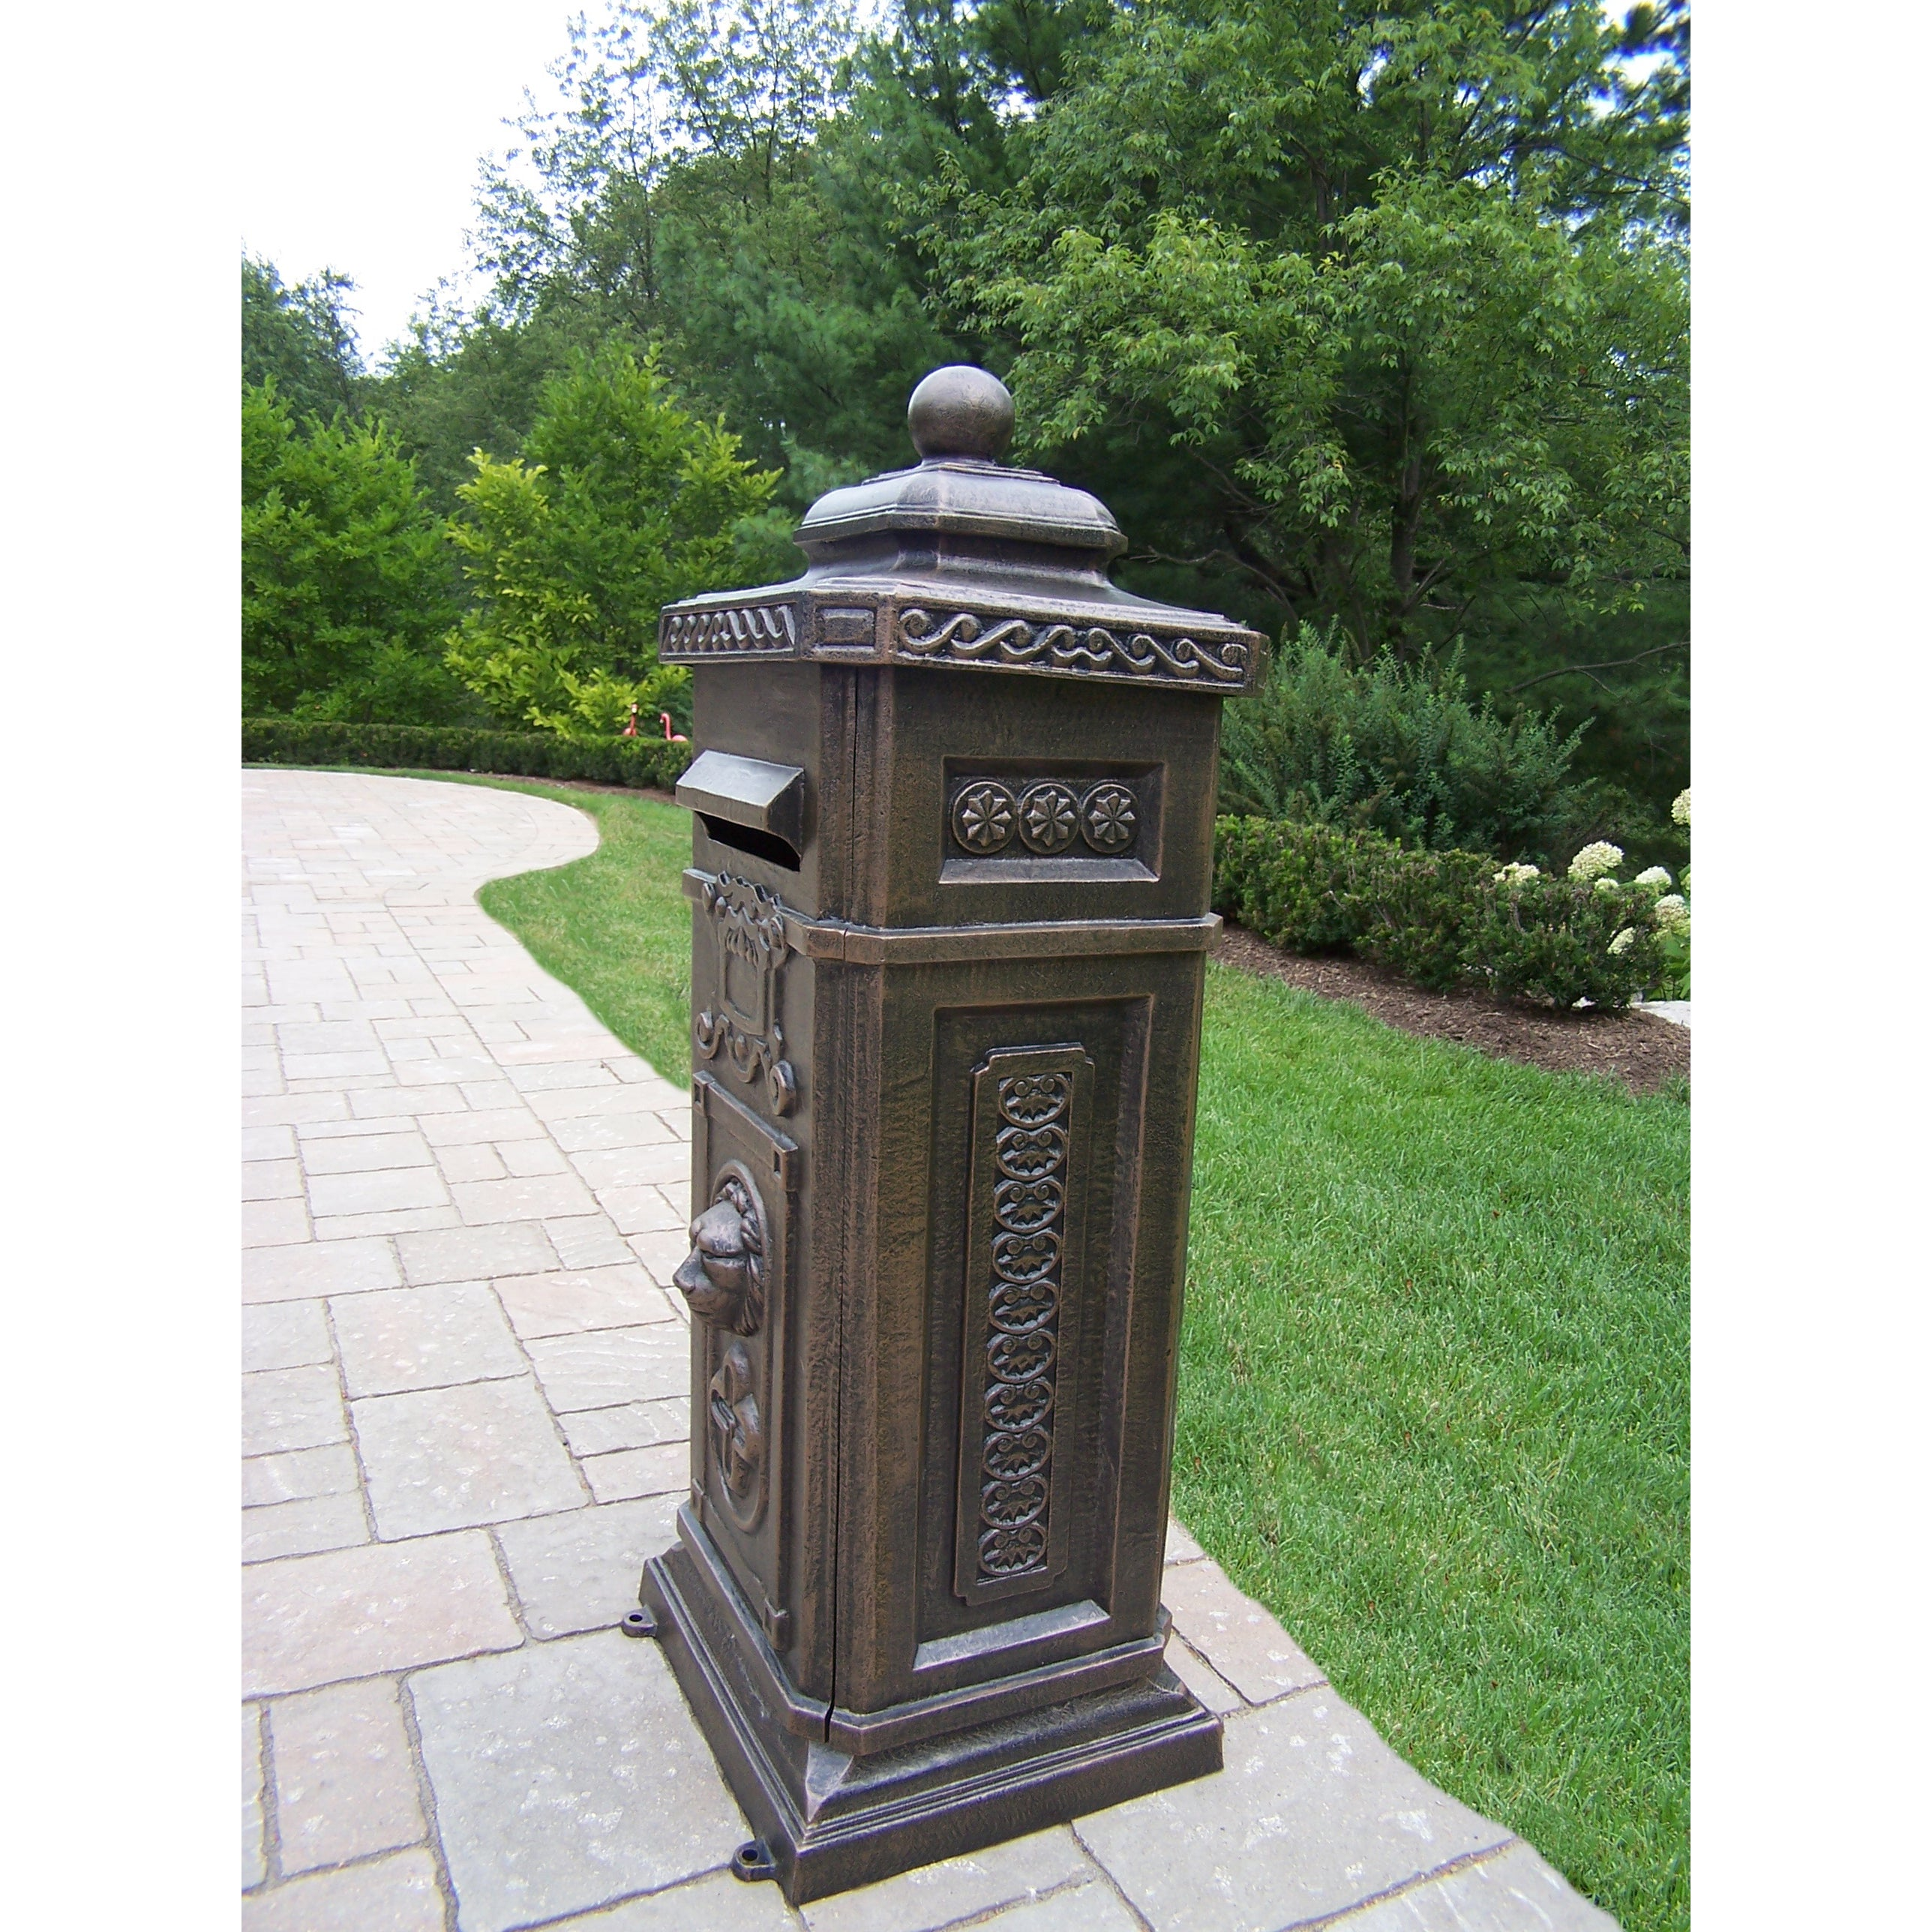 mailbox support sinks bathroom tile victorian your pedestal toilets with sink com home eljer design page plus lovely ideas of